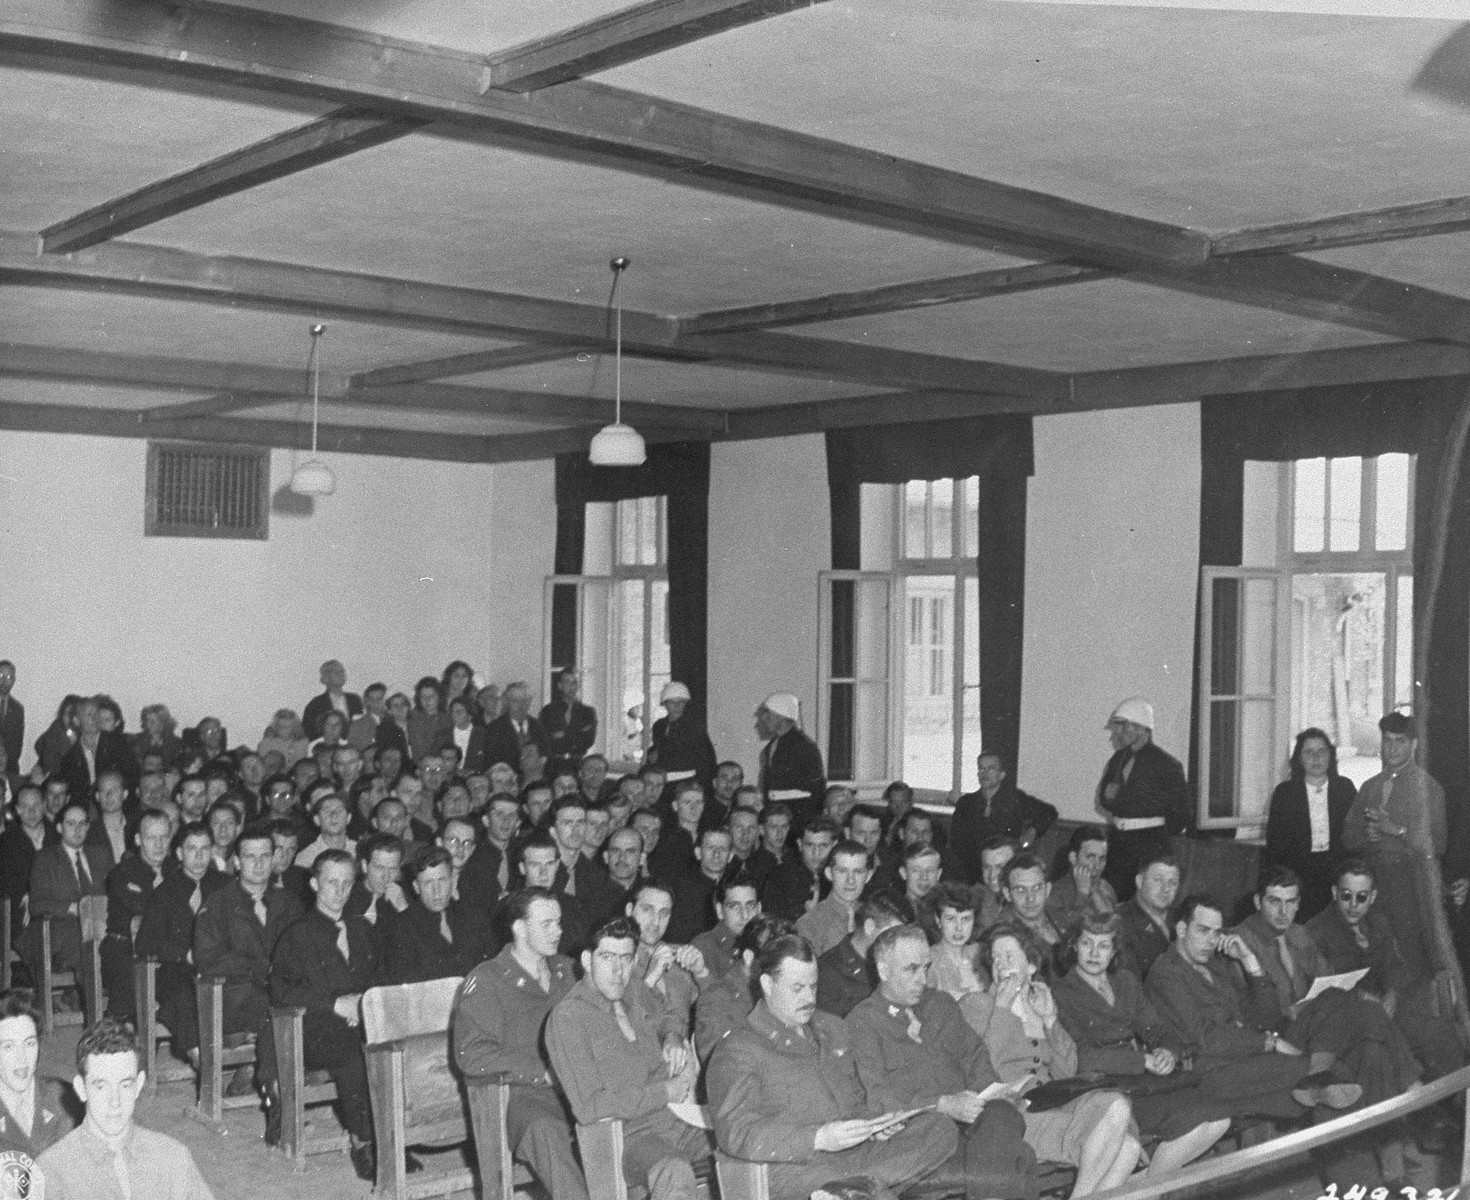 Spectators await the return of the judges for sentencing during the trial of 74 SS men charged with perpetrating the Malmedy atrocity.